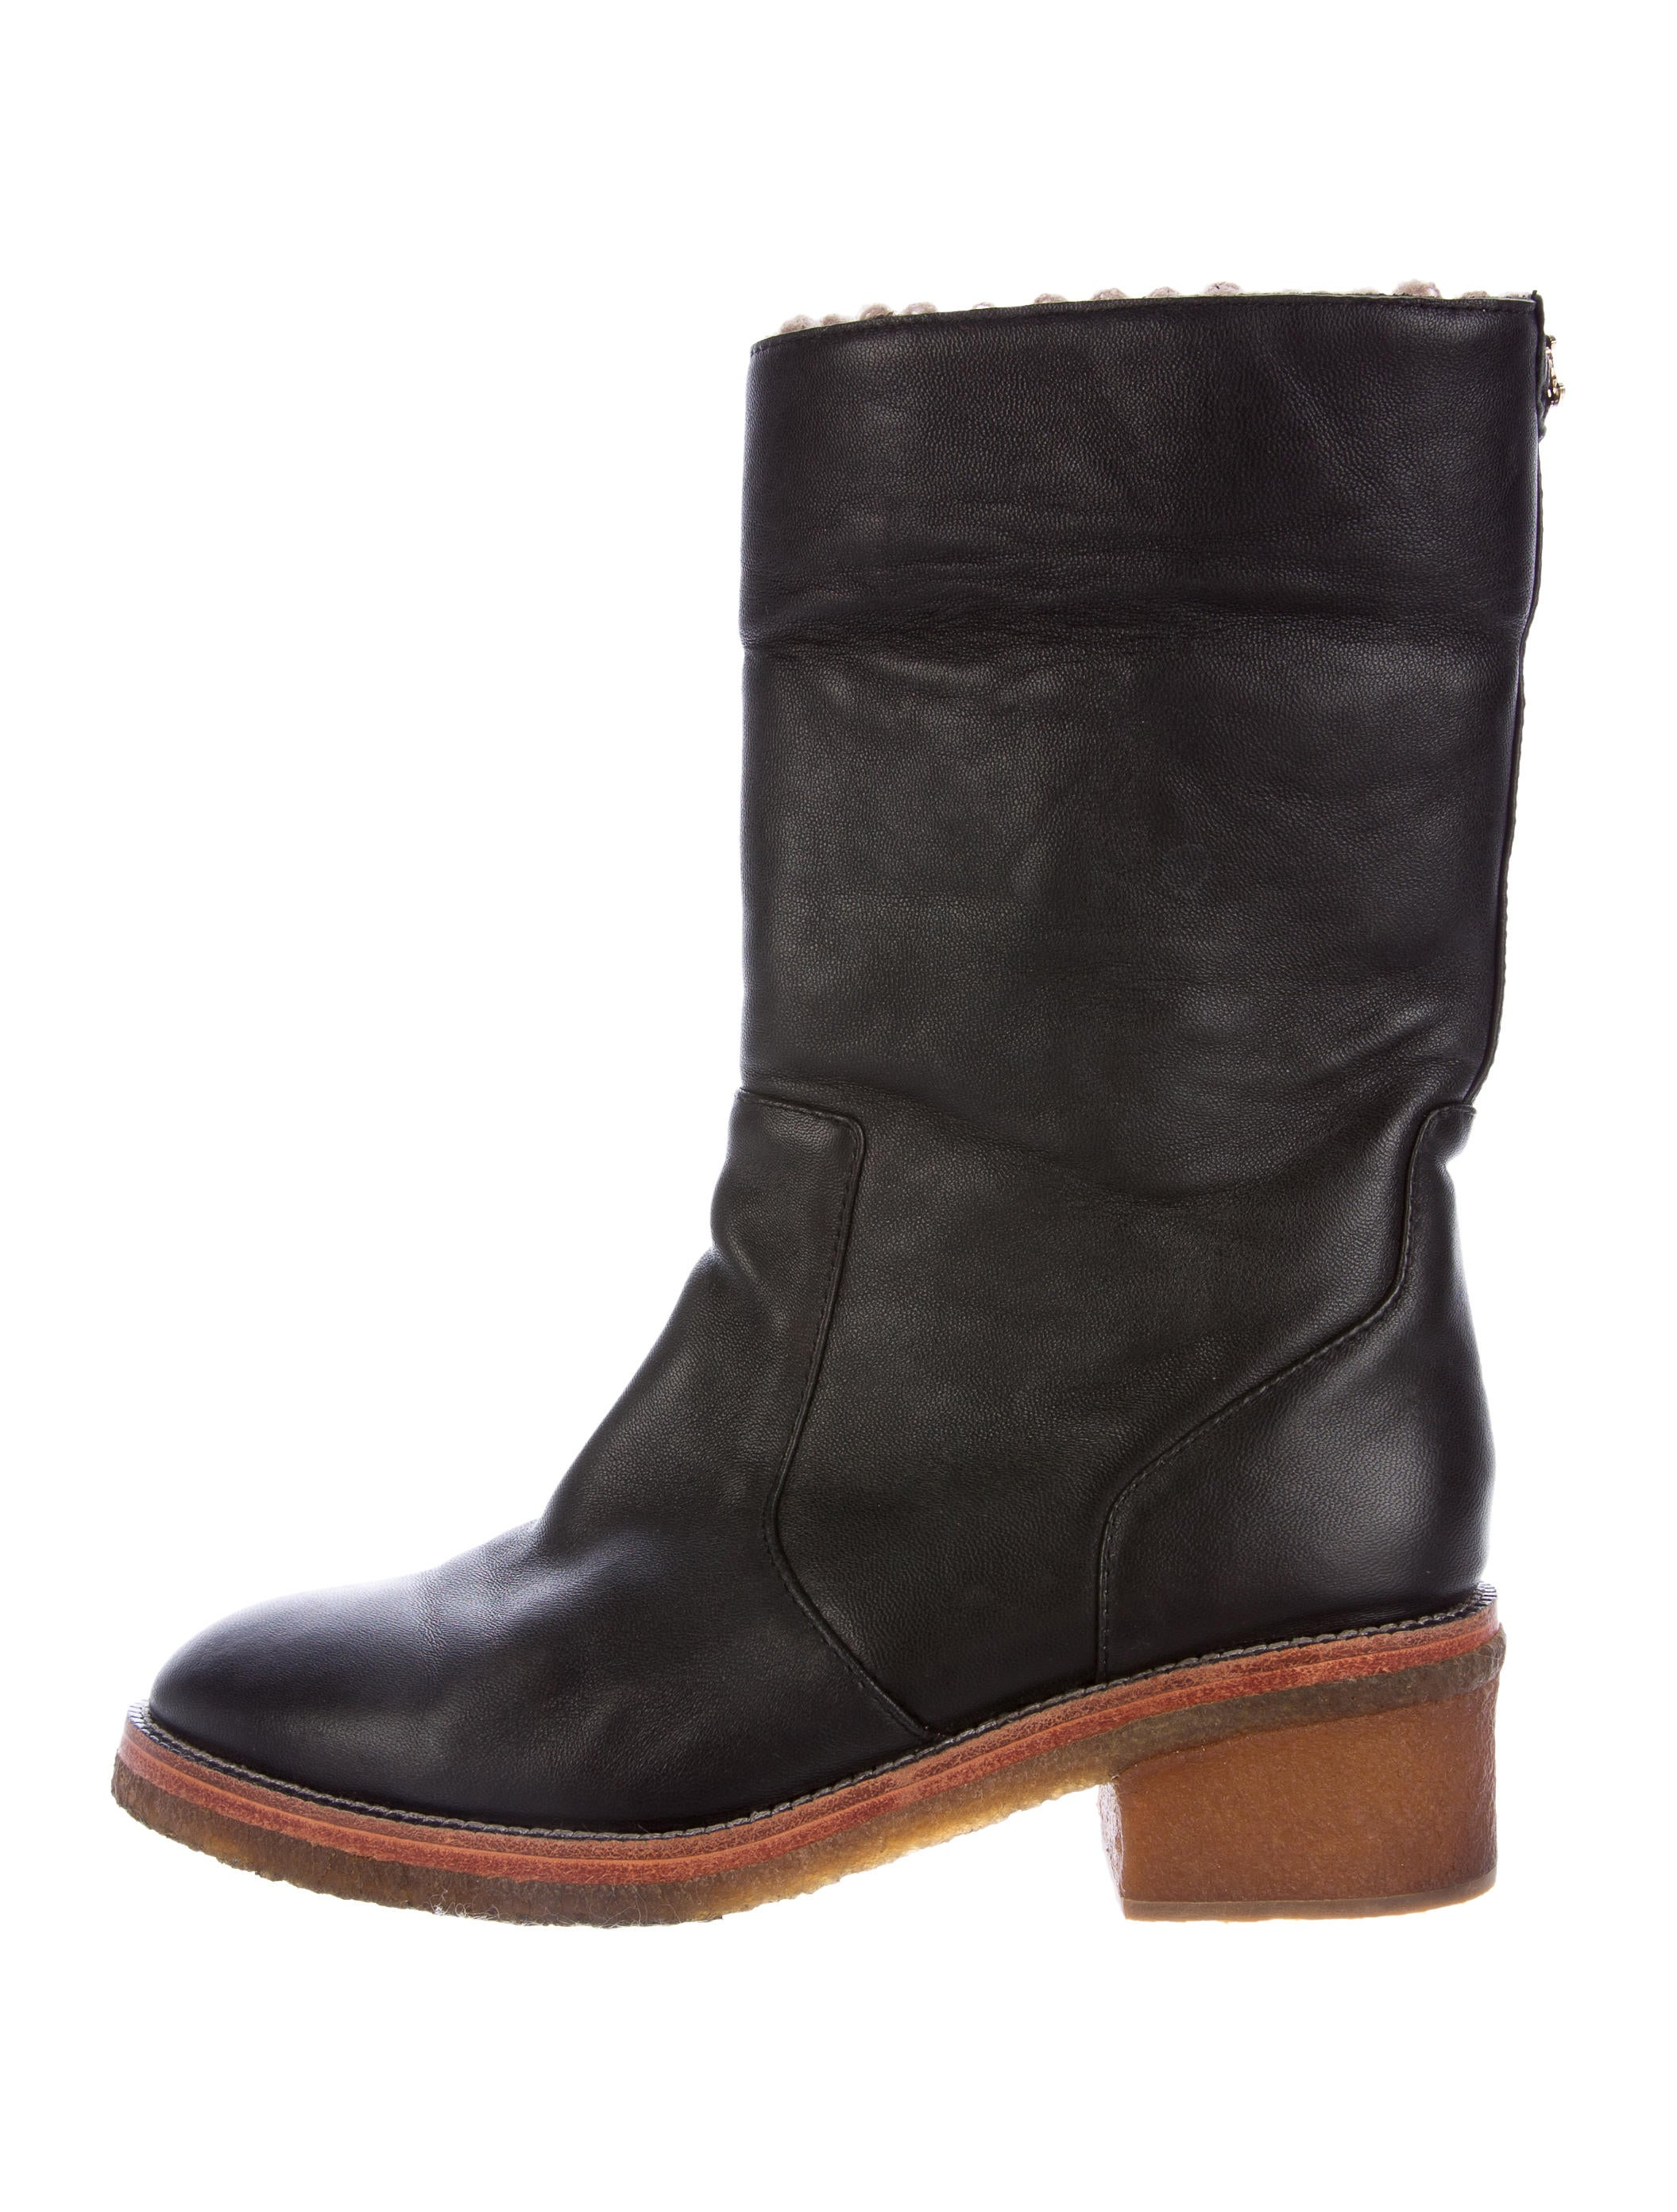 chanel leather mid calf boots shoes cha161492 the